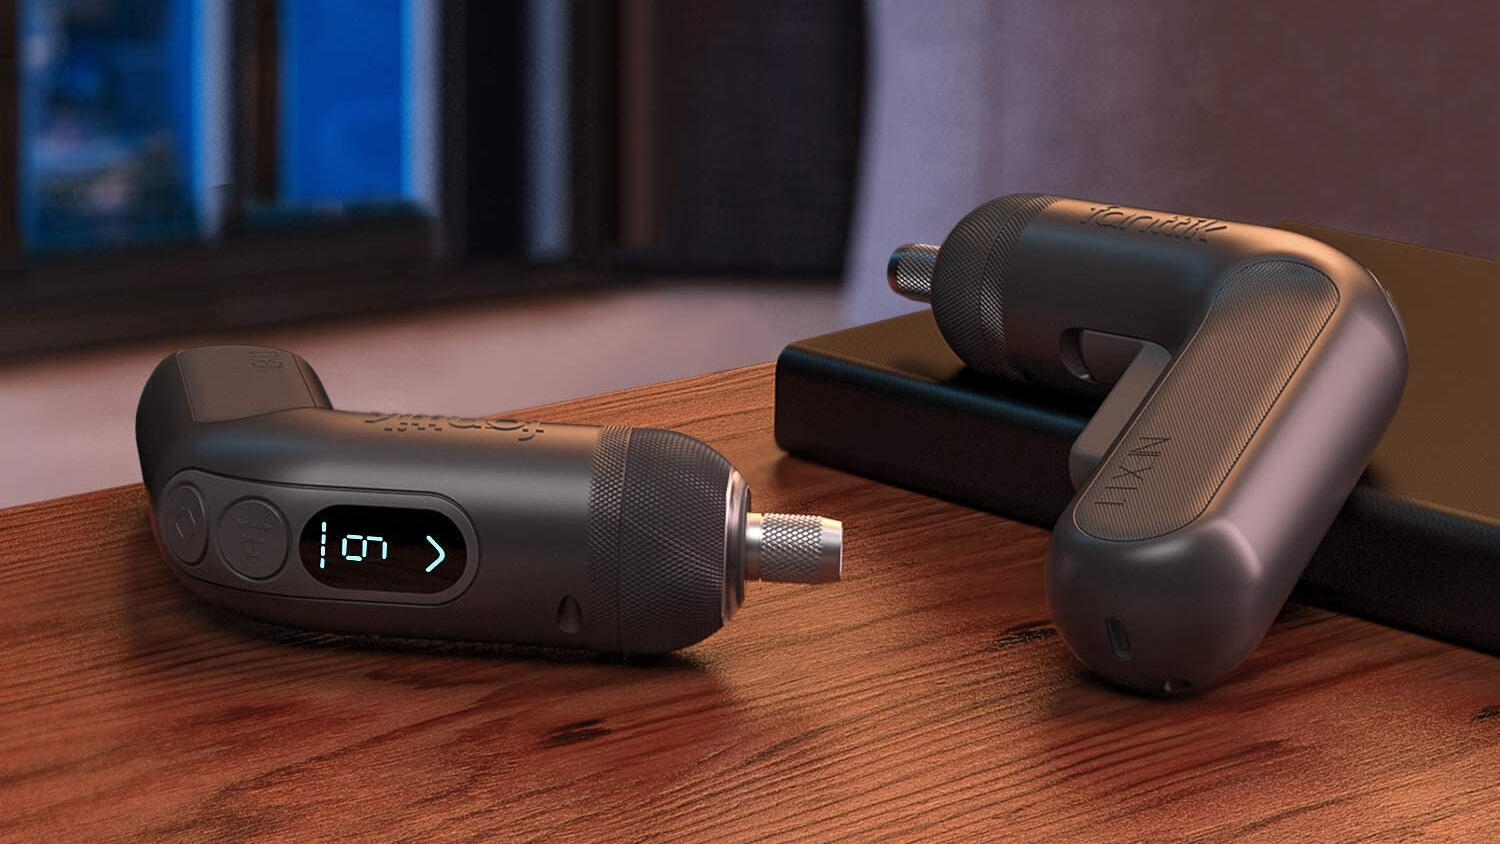 This tiny screwdriver features a magnetic chuck headlight and 6 gears for 35     - CNET